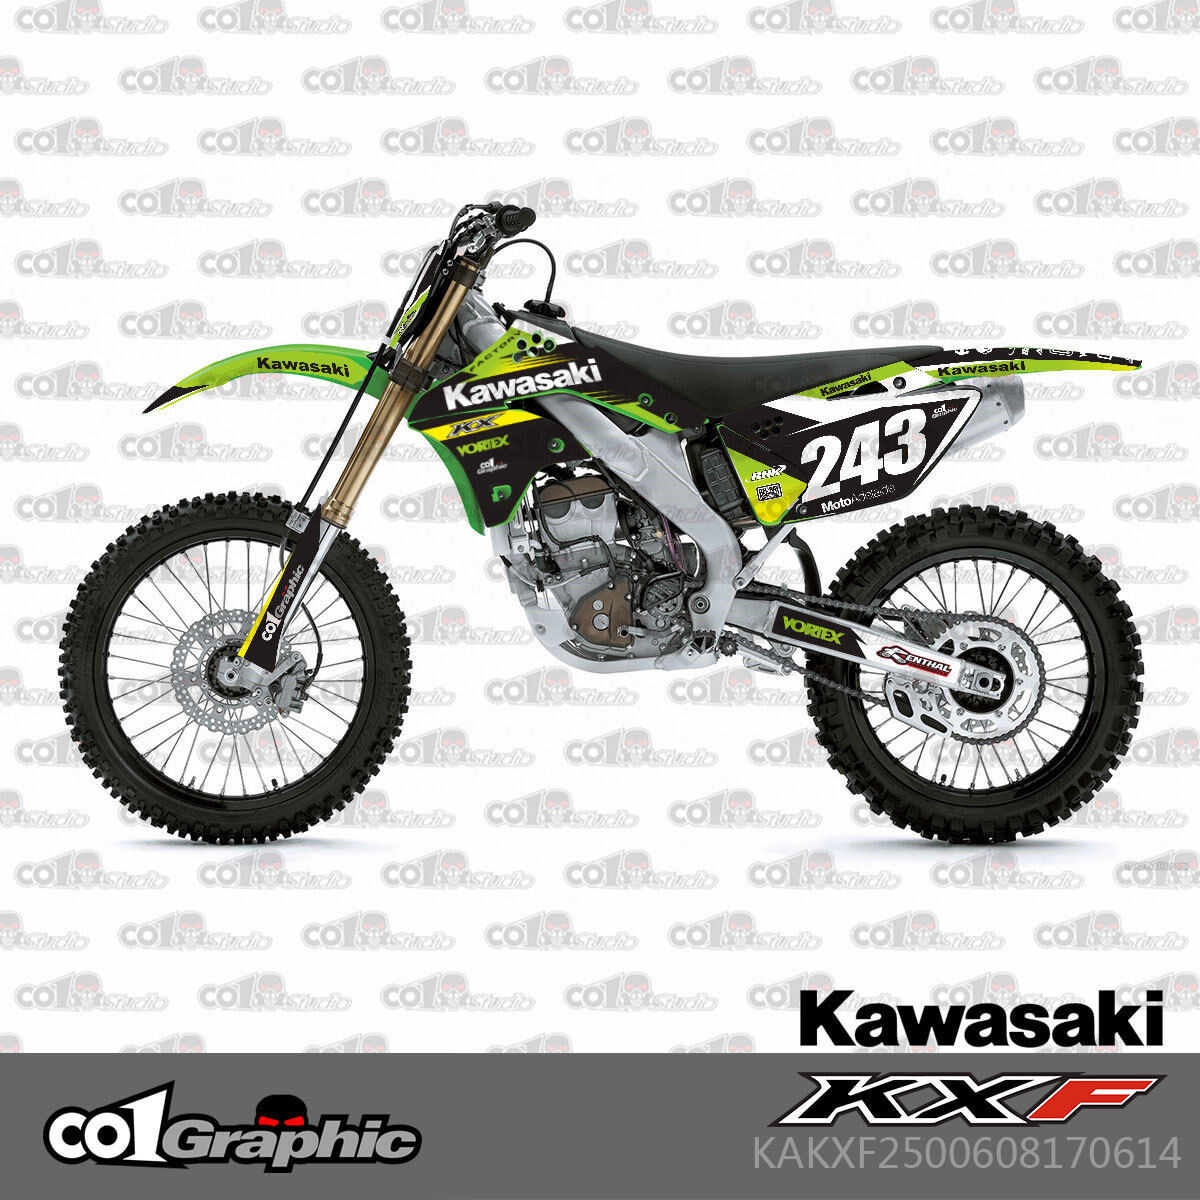 2006 2007 2008 KXF 250 GRAPHICS KIT KAWASAKI KX450F KXF 250F DECALS MX ISLAND